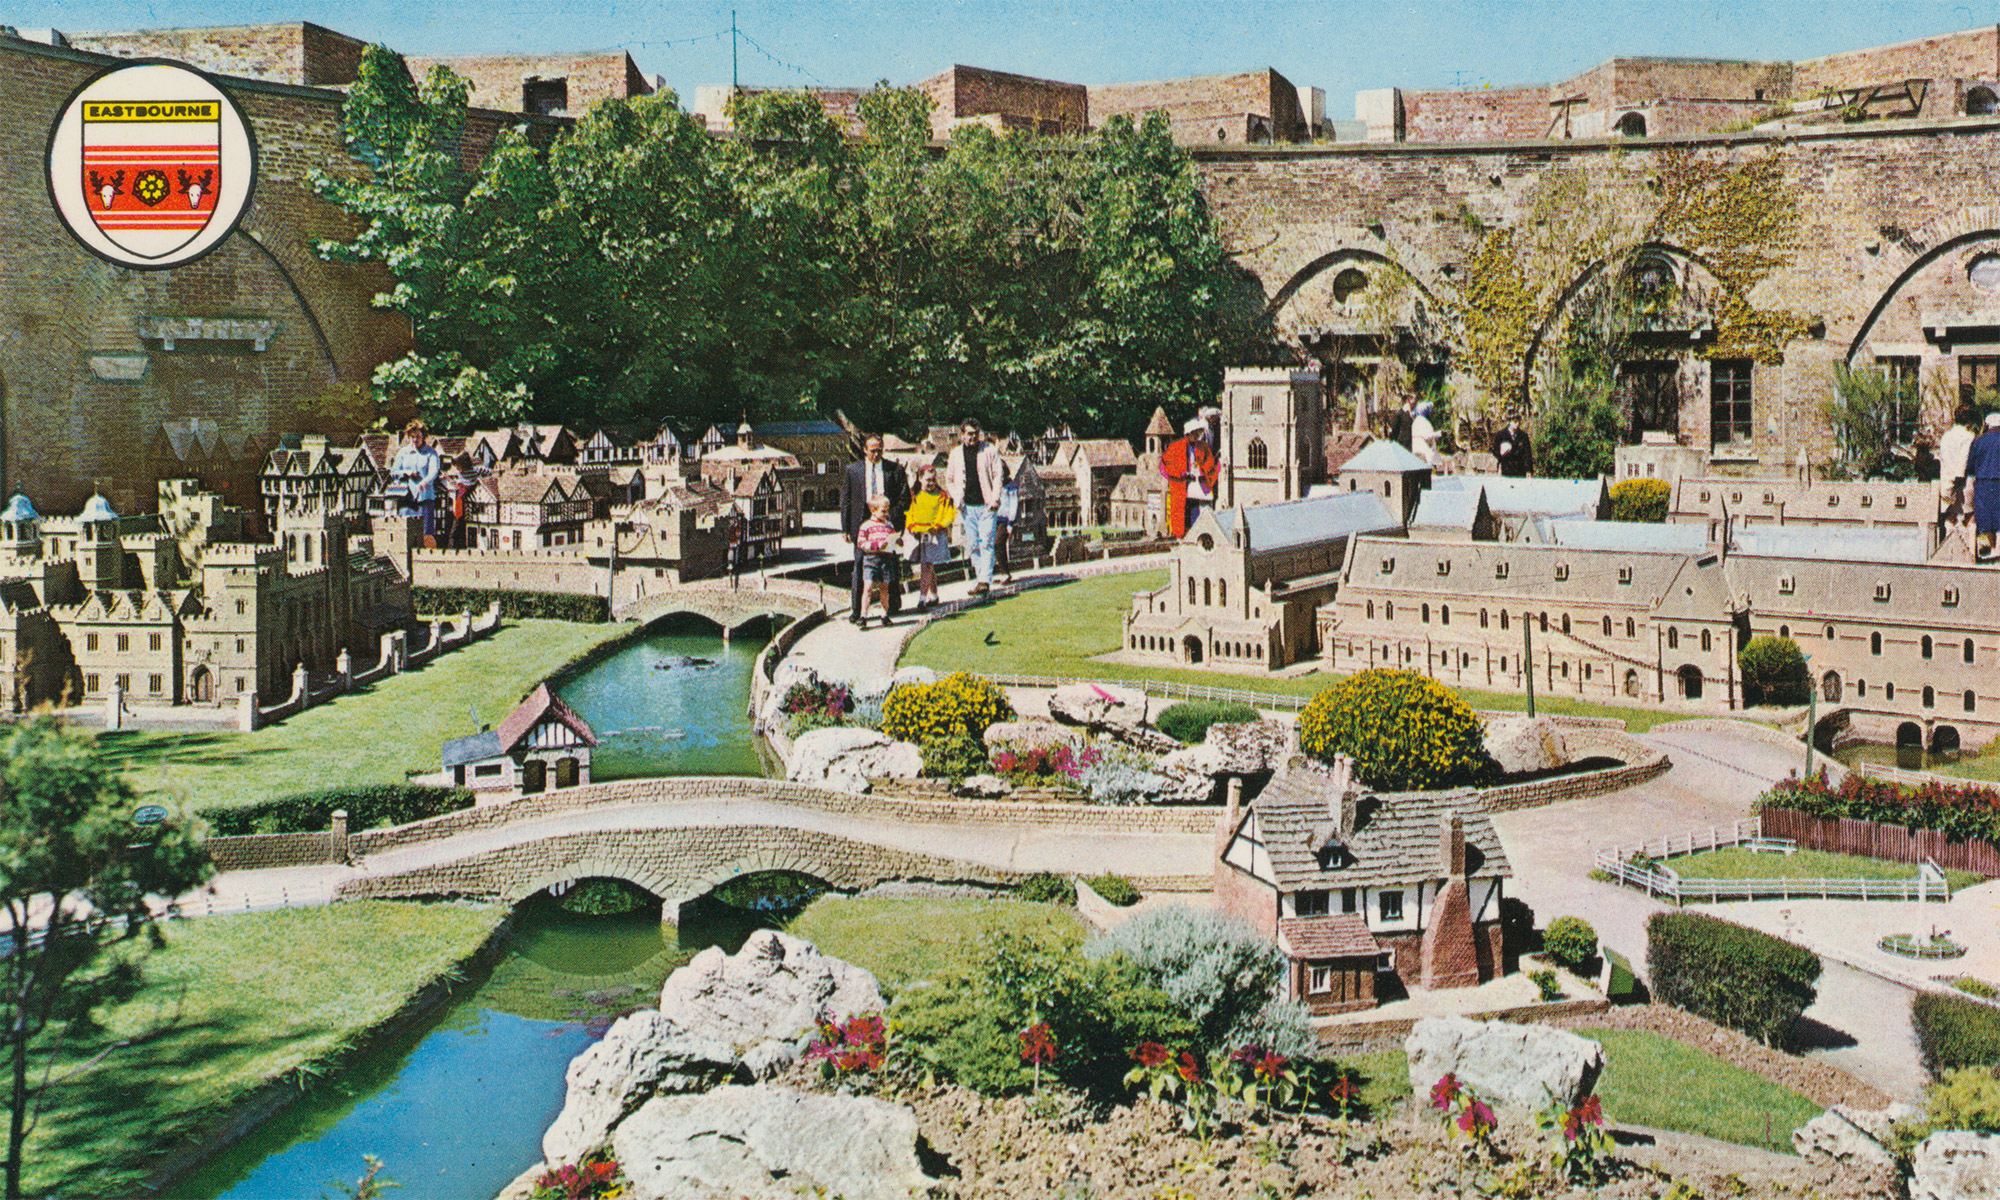 Eastbourne Model Village: Benjamin White's Masterwork in 3D